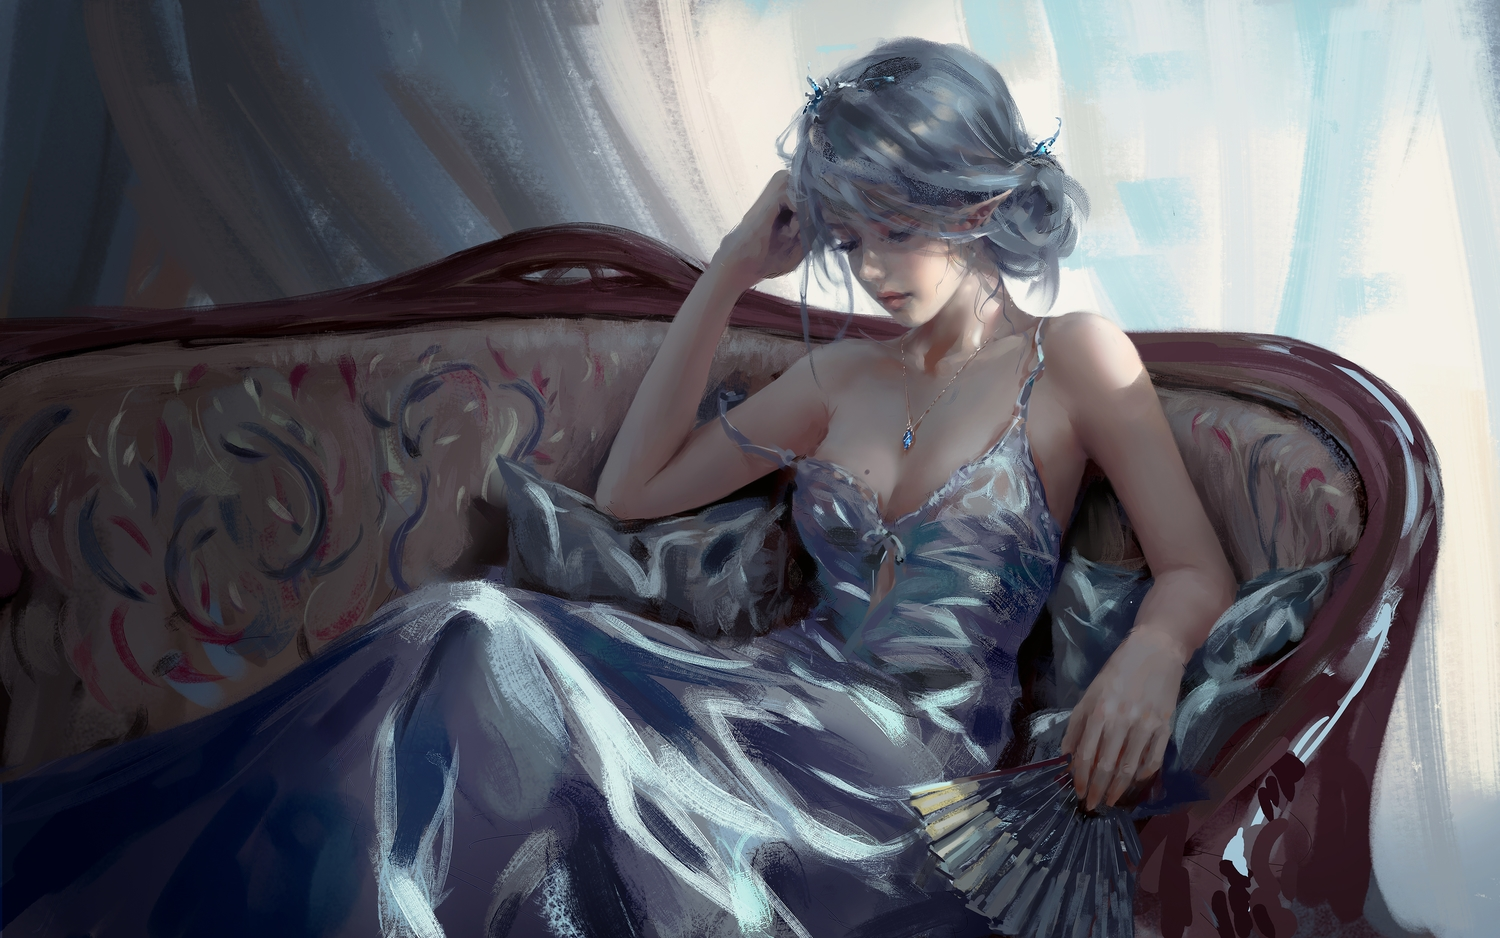 breasts celestia_(wlop) cleavage couch dark dress fan ghostblade gray_hair logo necklace no_bra pointed_ears realistic tiara watermark wlop